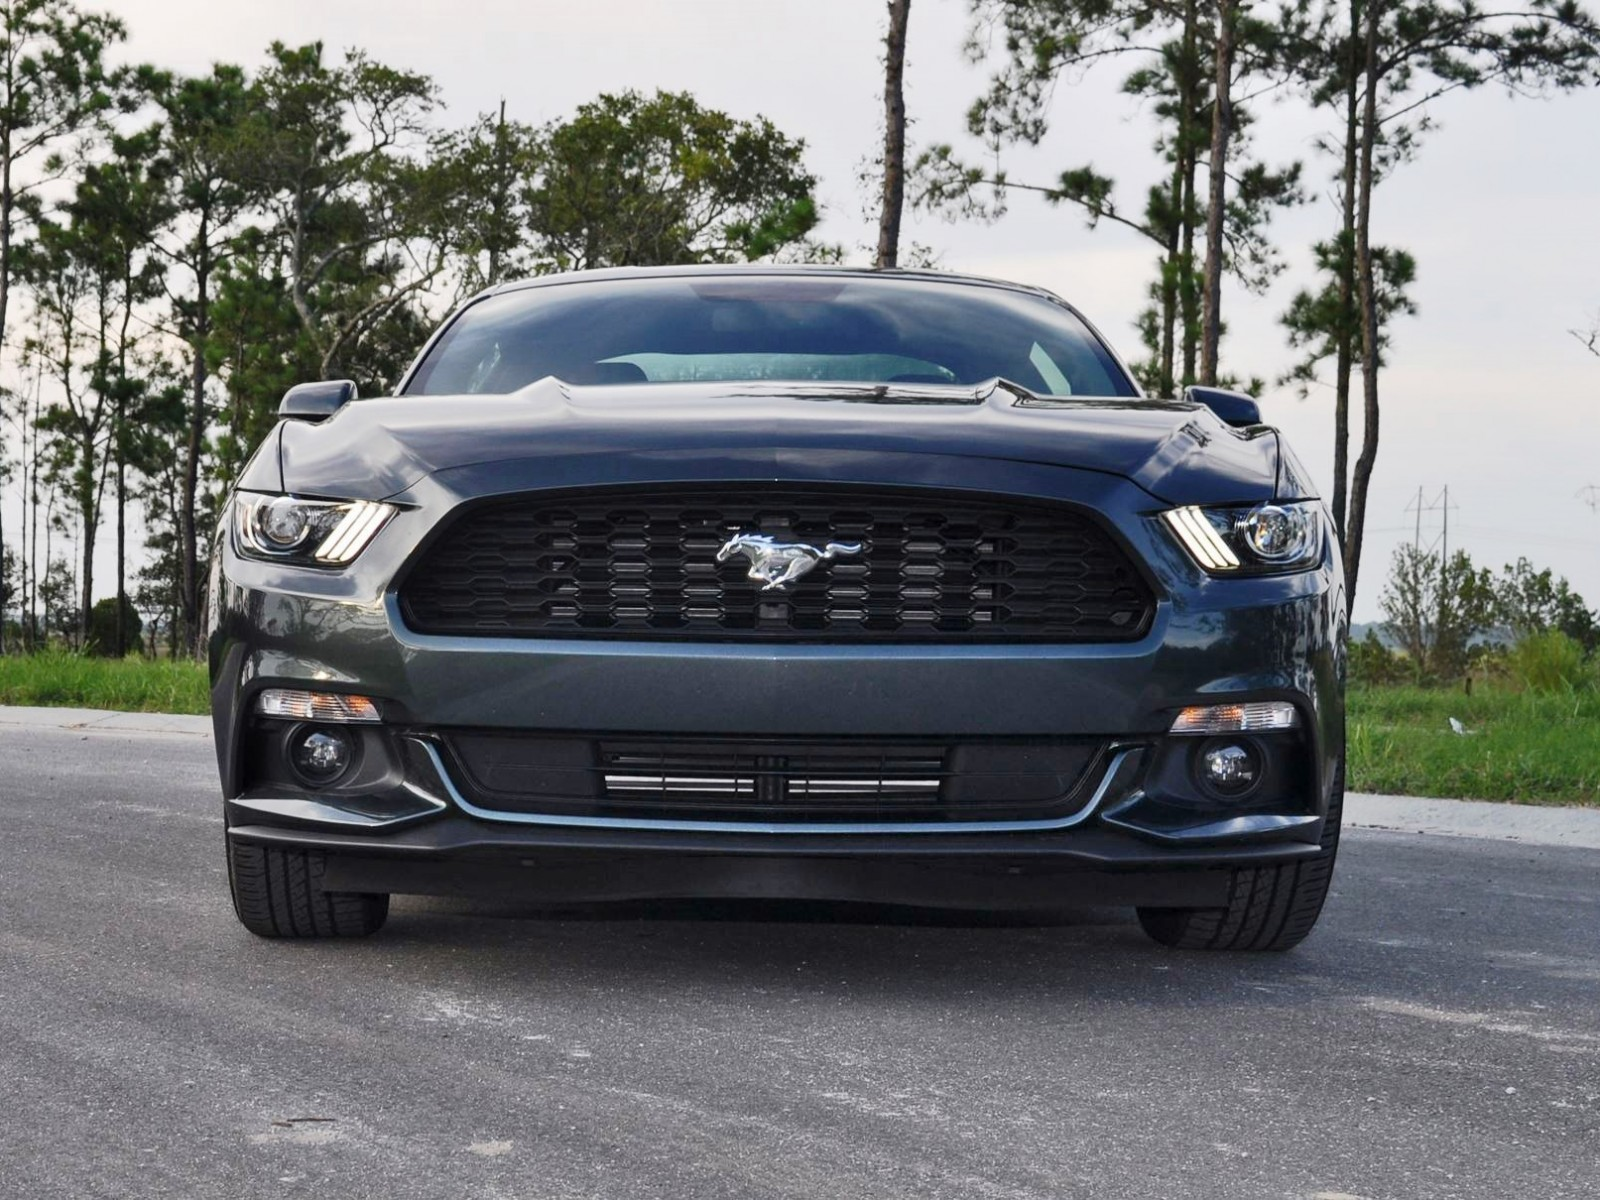 2015 ford mustang ecoboost automatic review 14. Black Bedroom Furniture Sets. Home Design Ideas